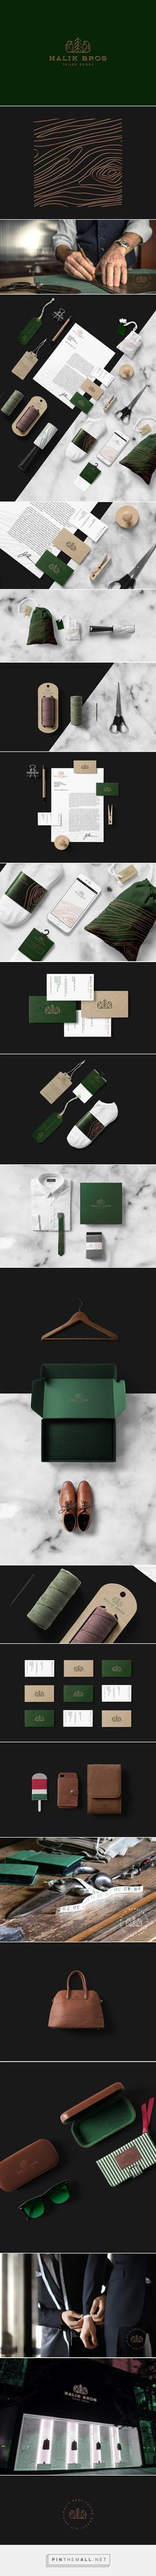 Malik Bros - Tailor Goods on Behance - created via https://pinthemall.net